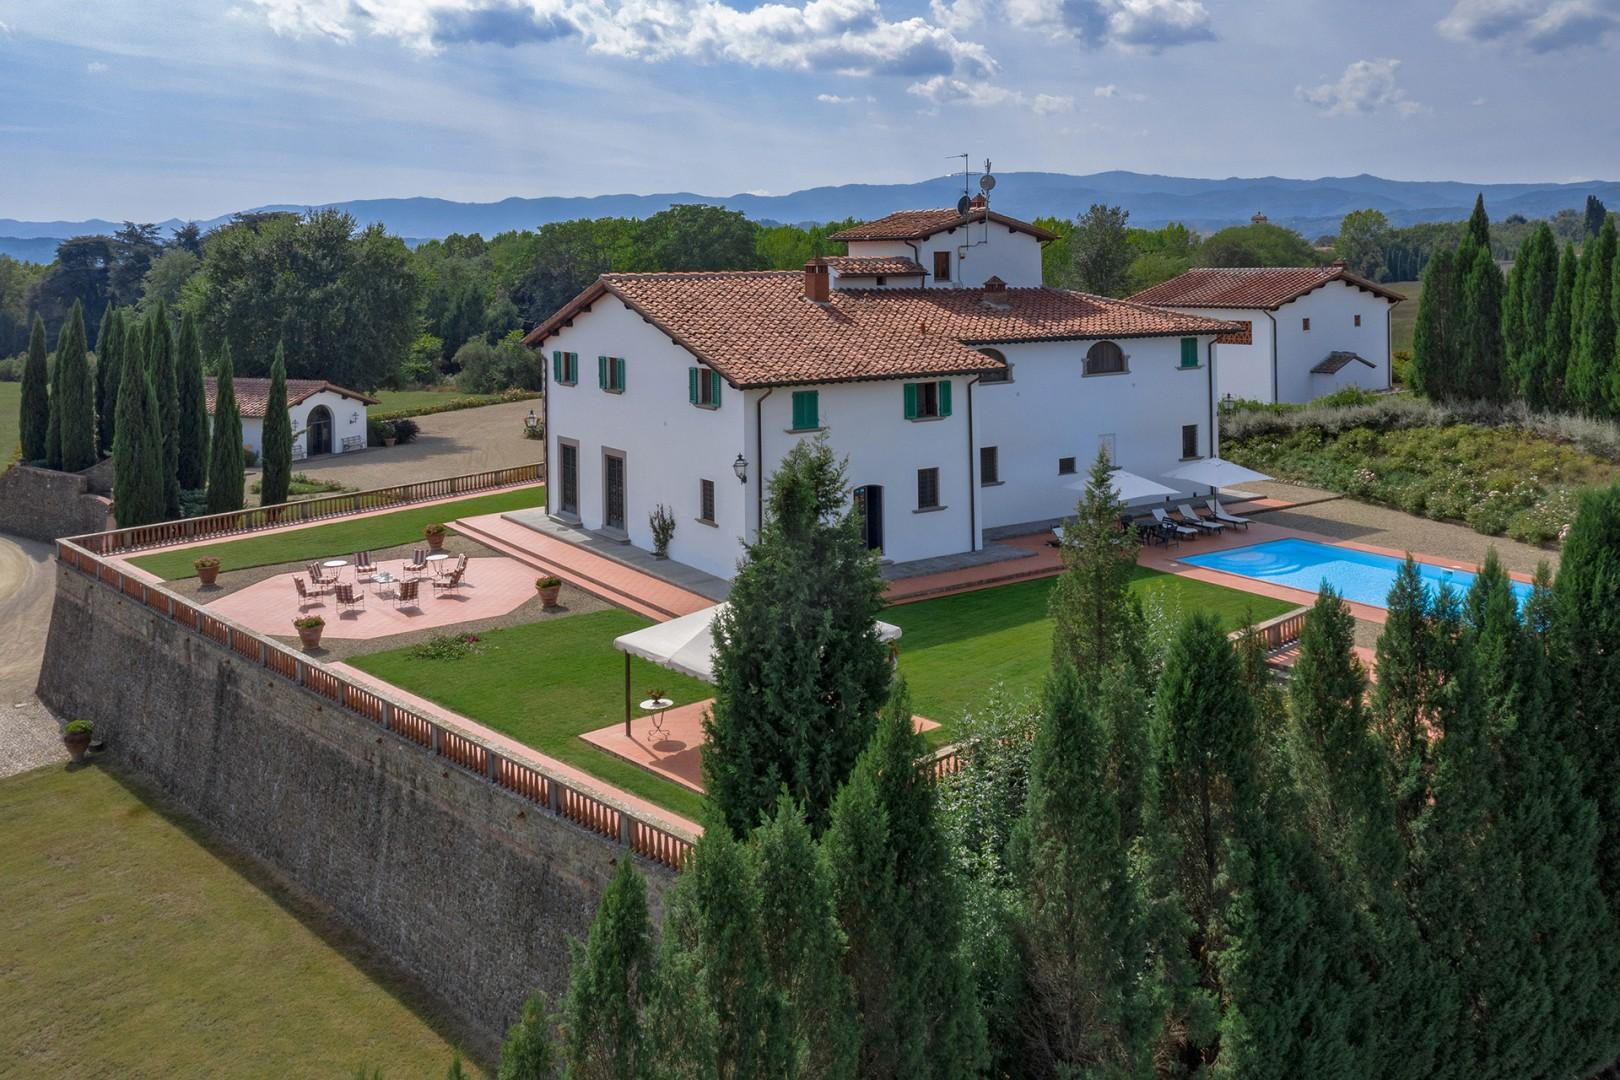 The estate is located in the coveted Arno Valley, between the towns of Reggello and Figline Valdarno